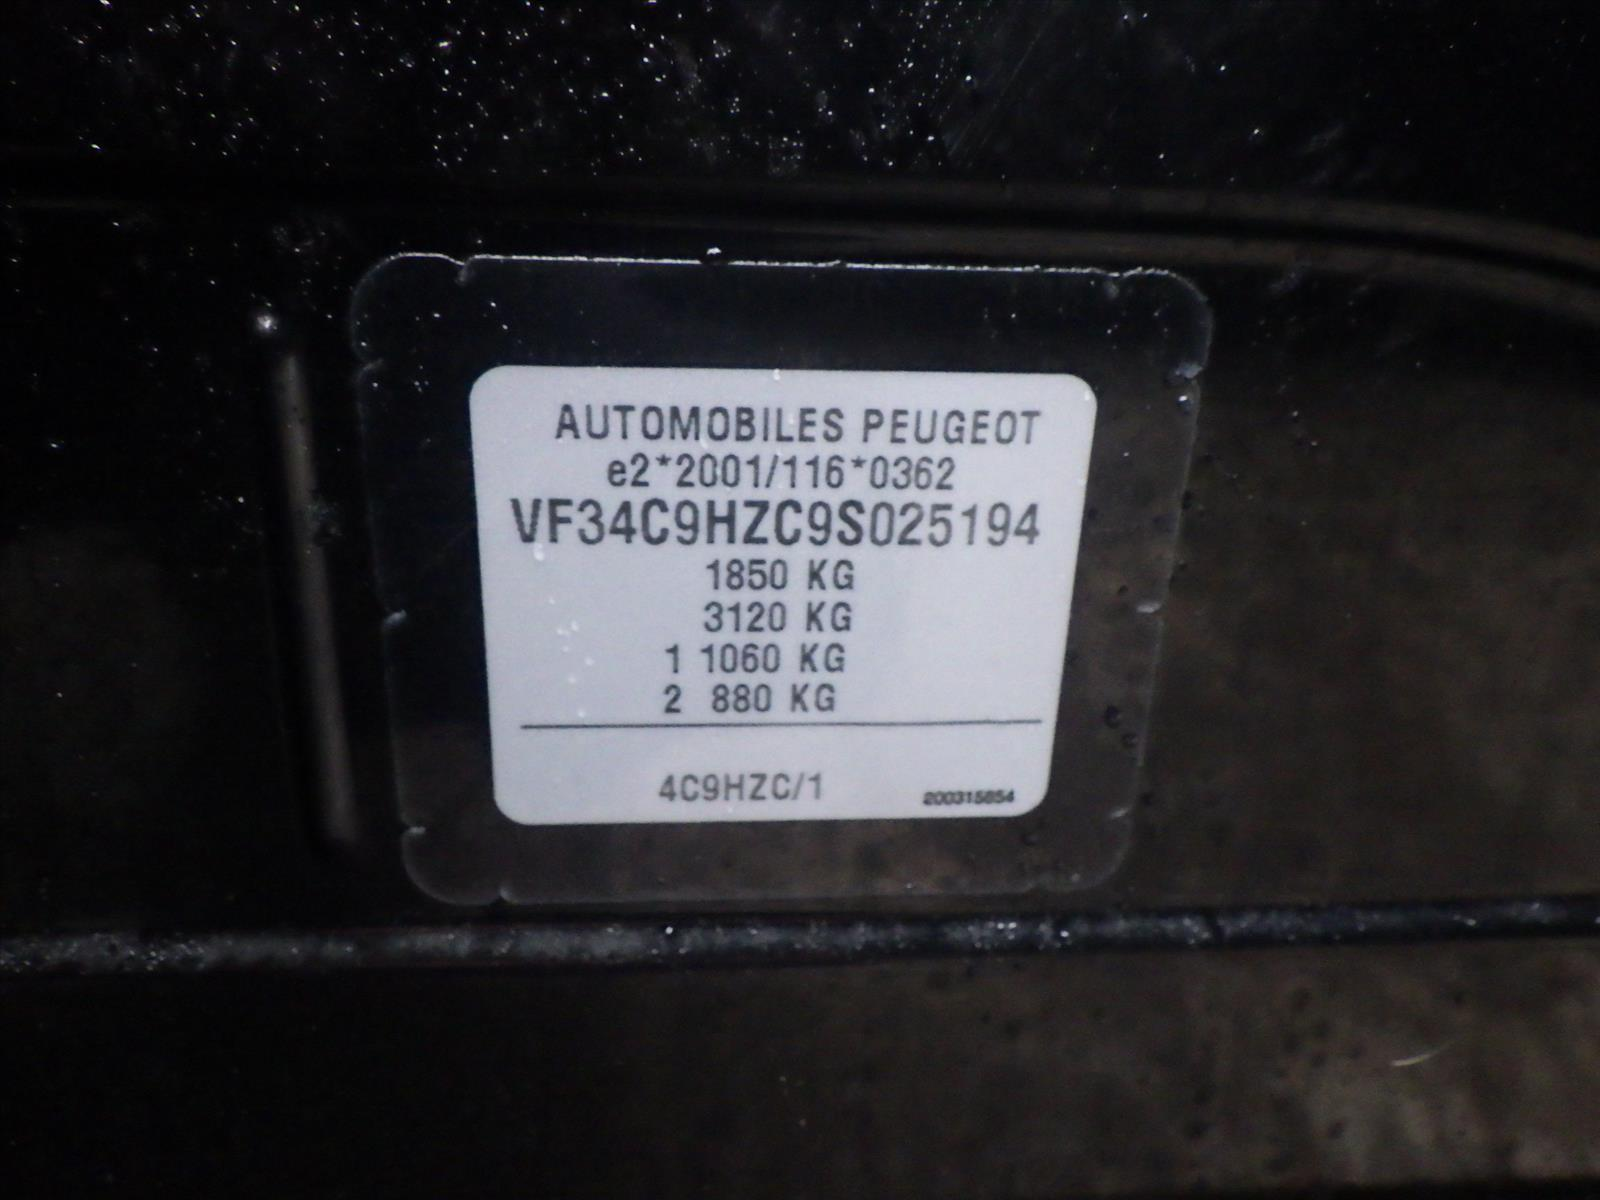 Peugeot 308 2008 To 2010 Fuse Box Diesel Manual For Sale From 106